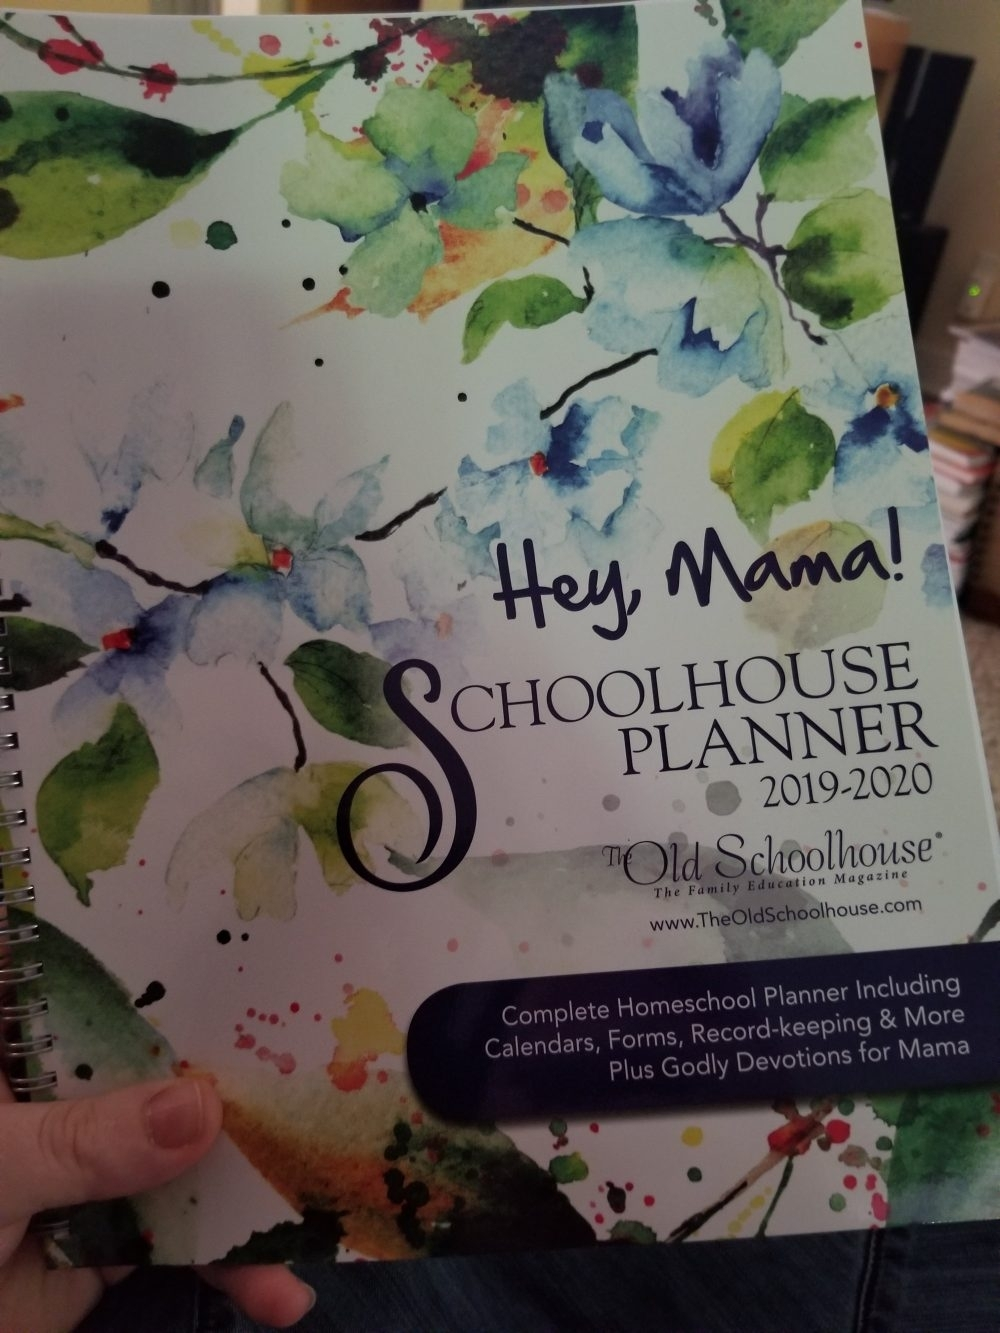 Hey, Mama! Homeschool Planner For 2019/20 Year {Review} ⋆ Creative intended for Homeschool Year At A Glance 2019-2020 Botanical Calendar Printable Free